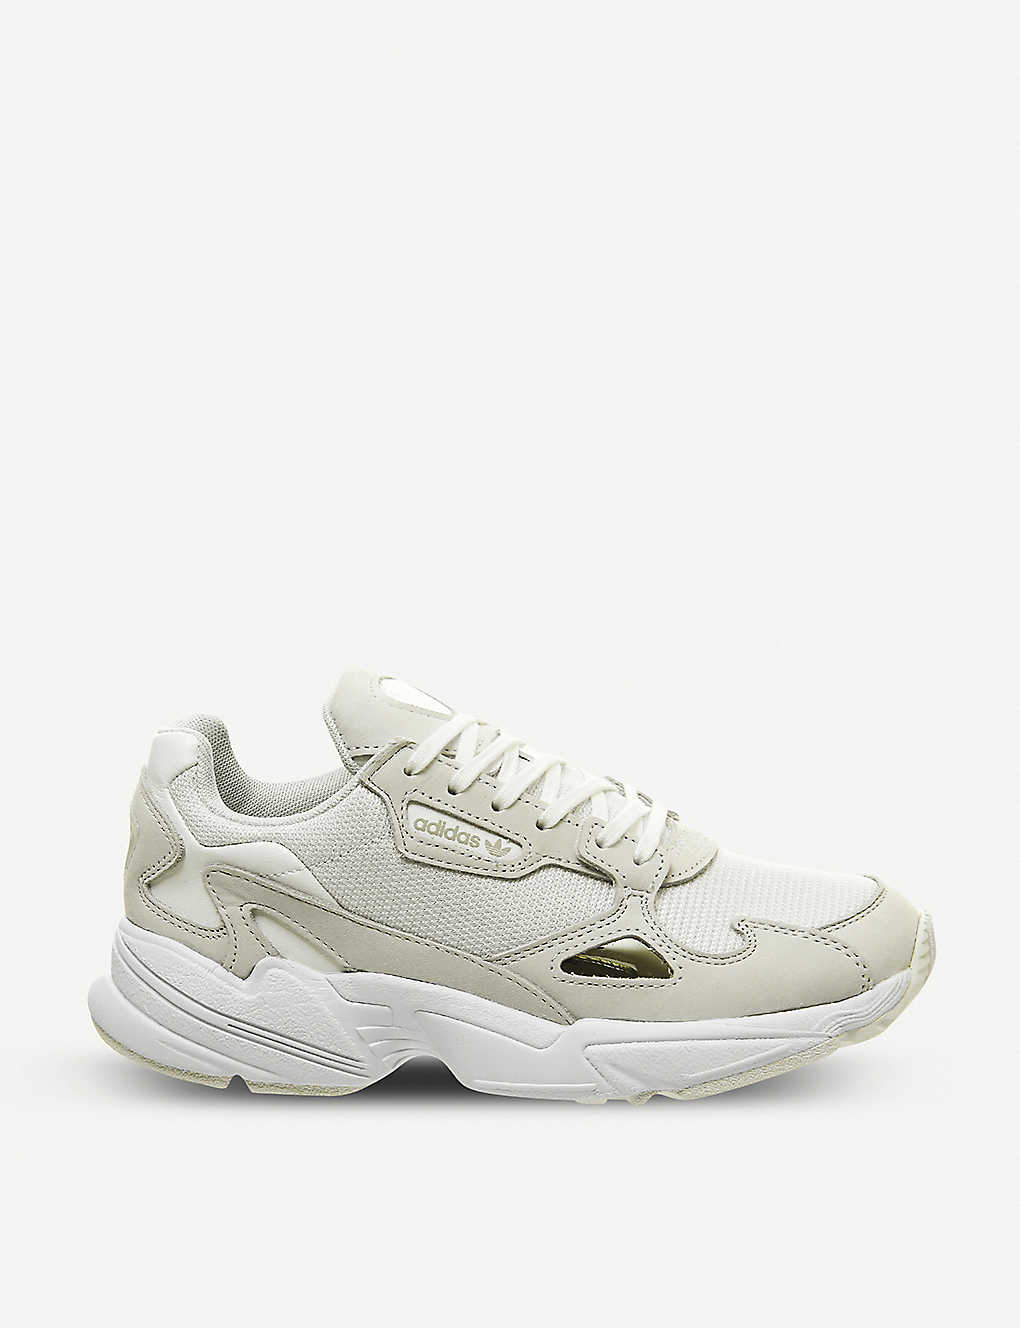 premium selection 4ac68 dbcd6 ADIDAS Falcon suede and mesh trainers